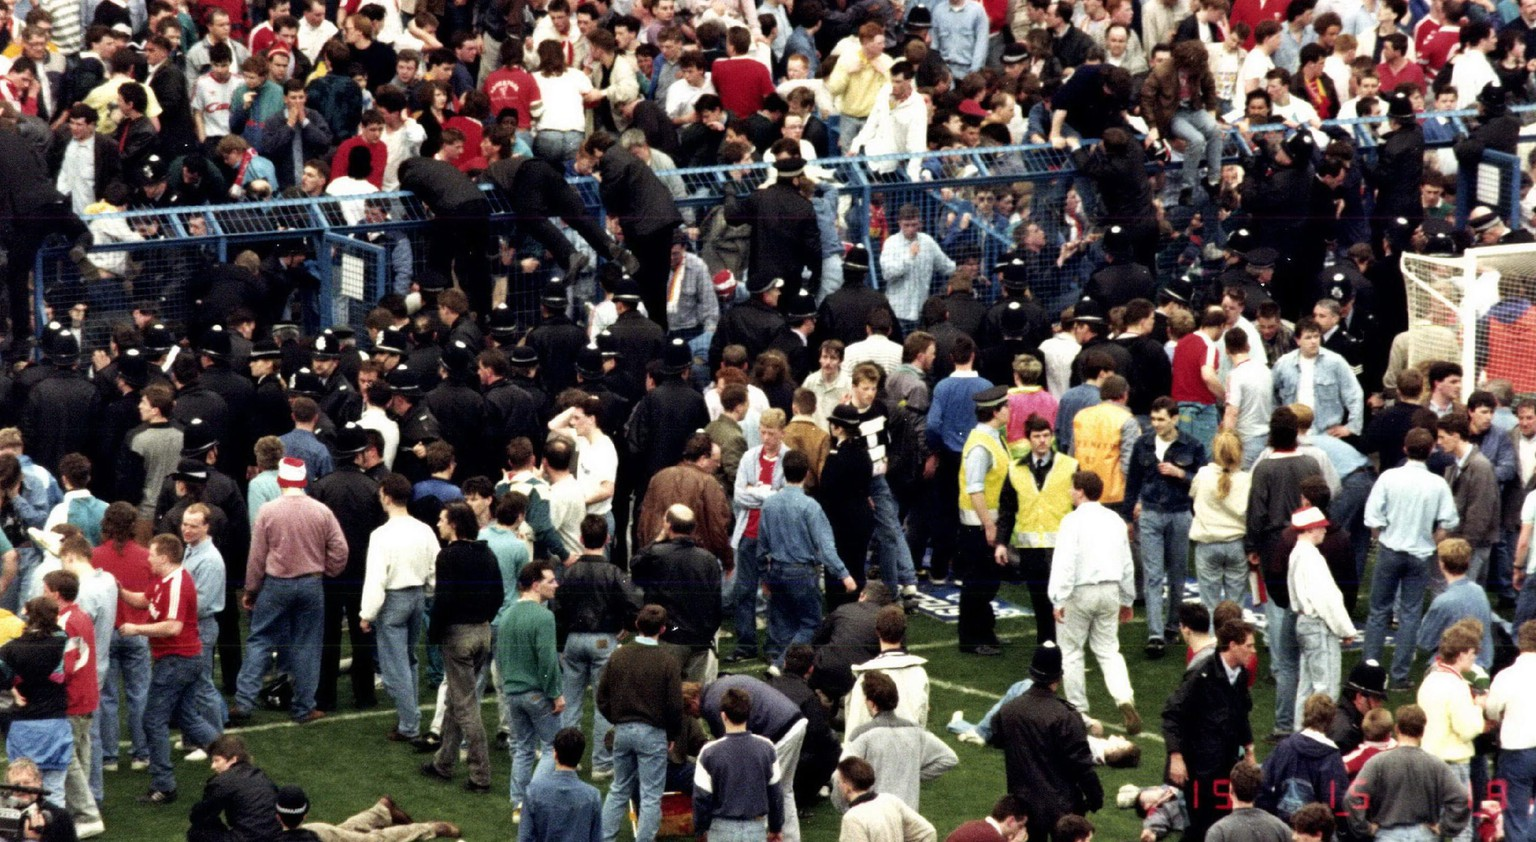 "epa05277858 A handout photograph - evidence number SYP000151090021 – made available by the Hillsborough Inquest on 26 April 2016 showing a photograph, shown in open court as part of the inquests' proceedings, of the Leppings Lane terrace at the Hillsborough Stadium, Sheffield, England, on 15 April 1989.  A human crush caused the deaths of 96 people and injured 766 others, at a FA Cup semi final soccer match between Liverpool and Nottingham Forest at Hillsborough Stadium, Sheffield, England, on 15 April 1989.  EPA/HILLSBOROUGH INQUEST / HANDOUT MADATORY CREDIT: The Hillsborough Inquests – www.hillsboroughinquests.independent.gov.uk"" HANDOUT EDITORIAL USE ONLY/NO SALES/NO ARCHIVES"